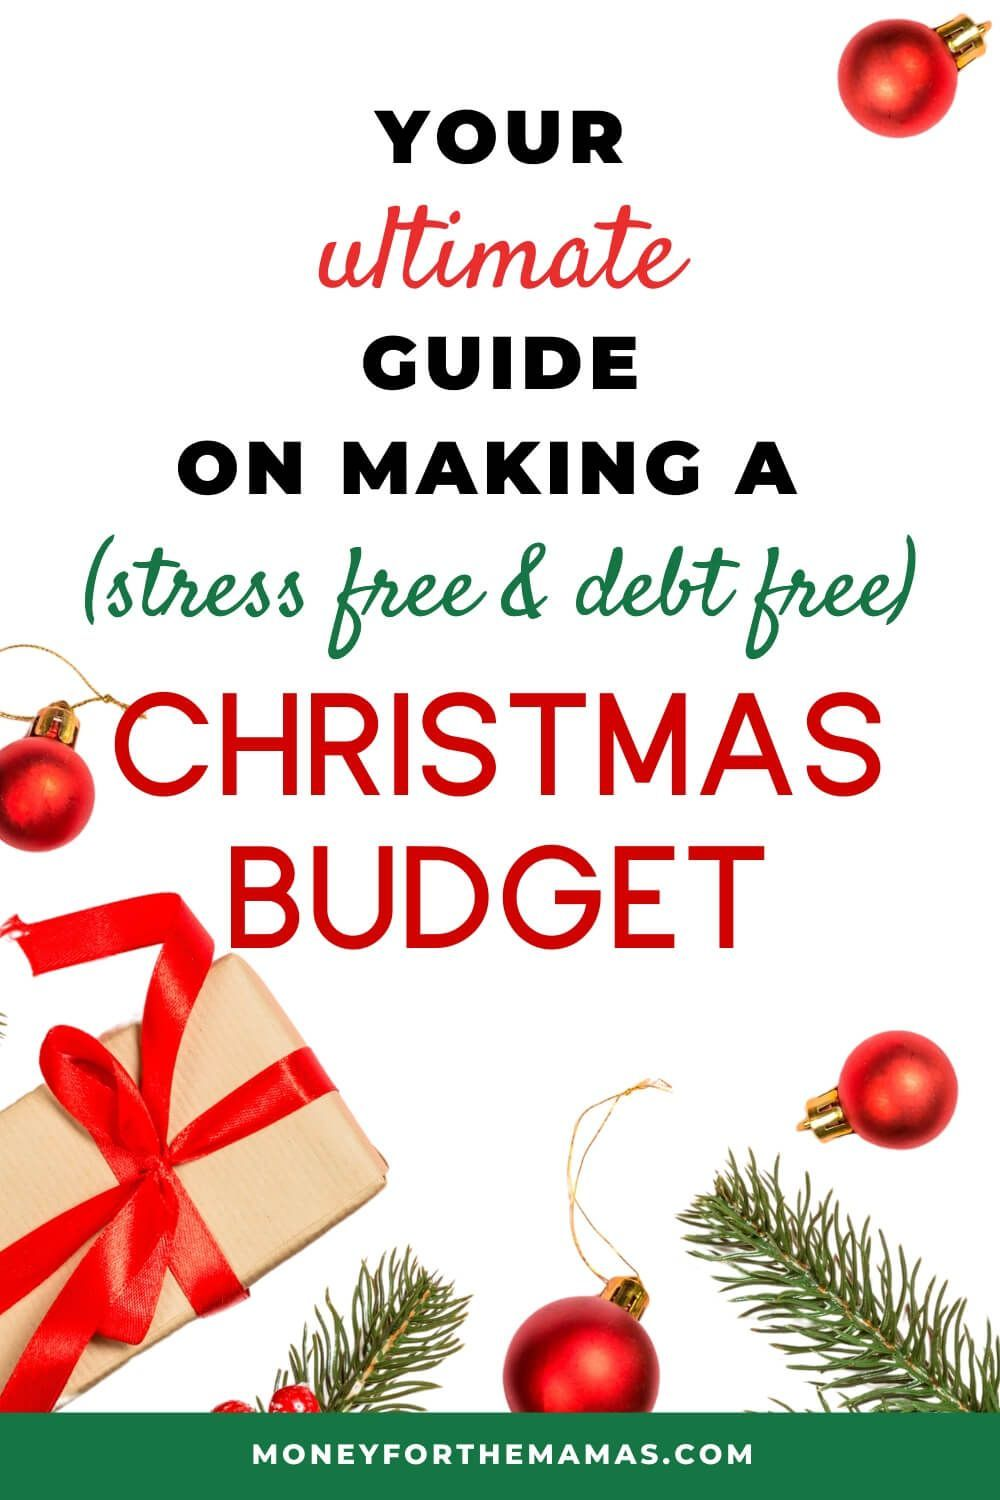 Fres Christmas Money 2020 Your Ultimate Guide to a Stress Free (and Debt Free) Christmas